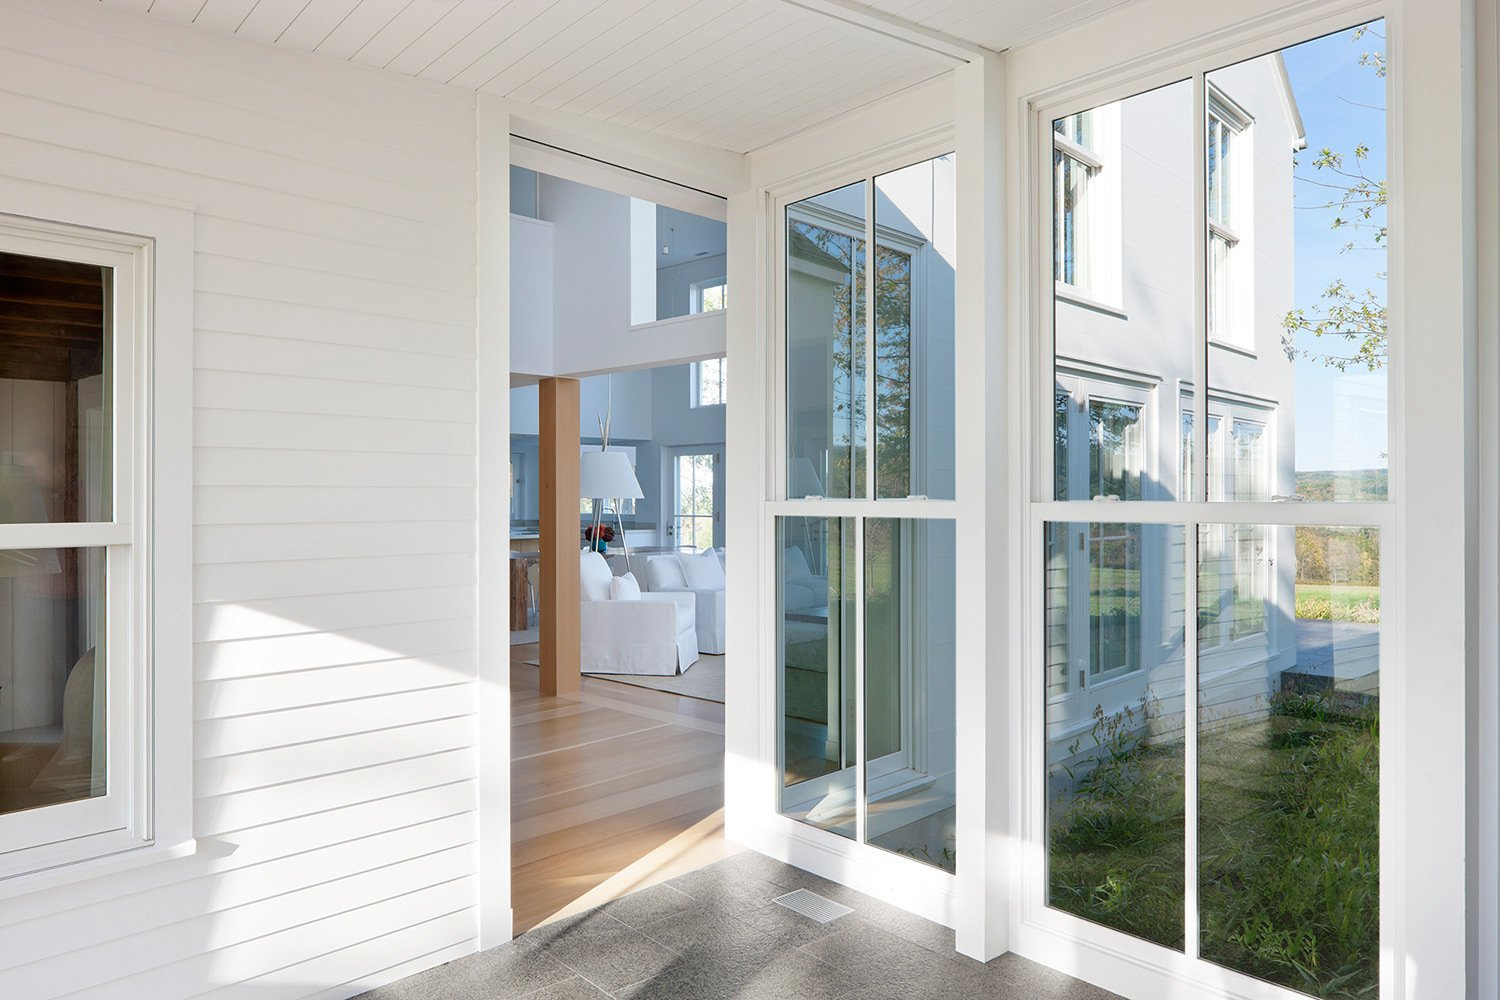 Photo 5 of 8 in Traditional Farmhouse Meets Contemporary Living